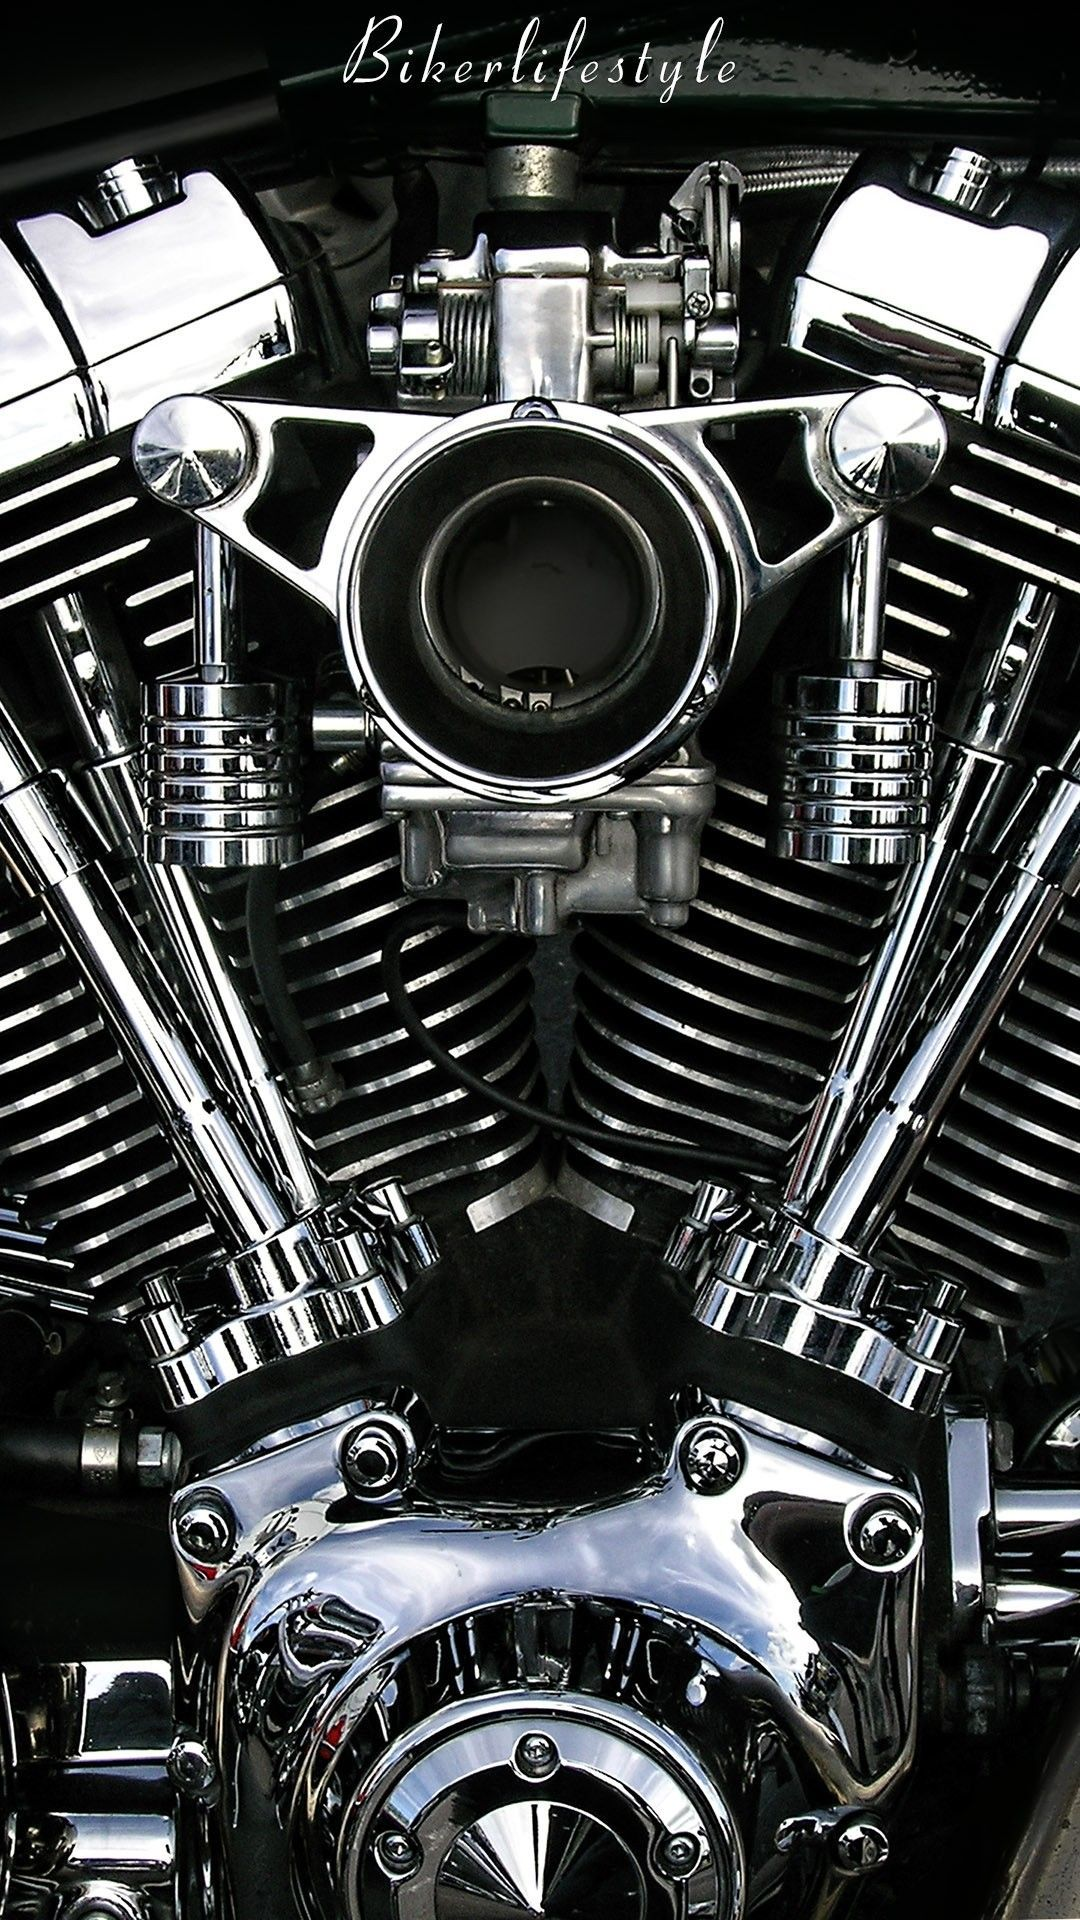 Android Harley Davidson Wallpapers Wallpaper Cave